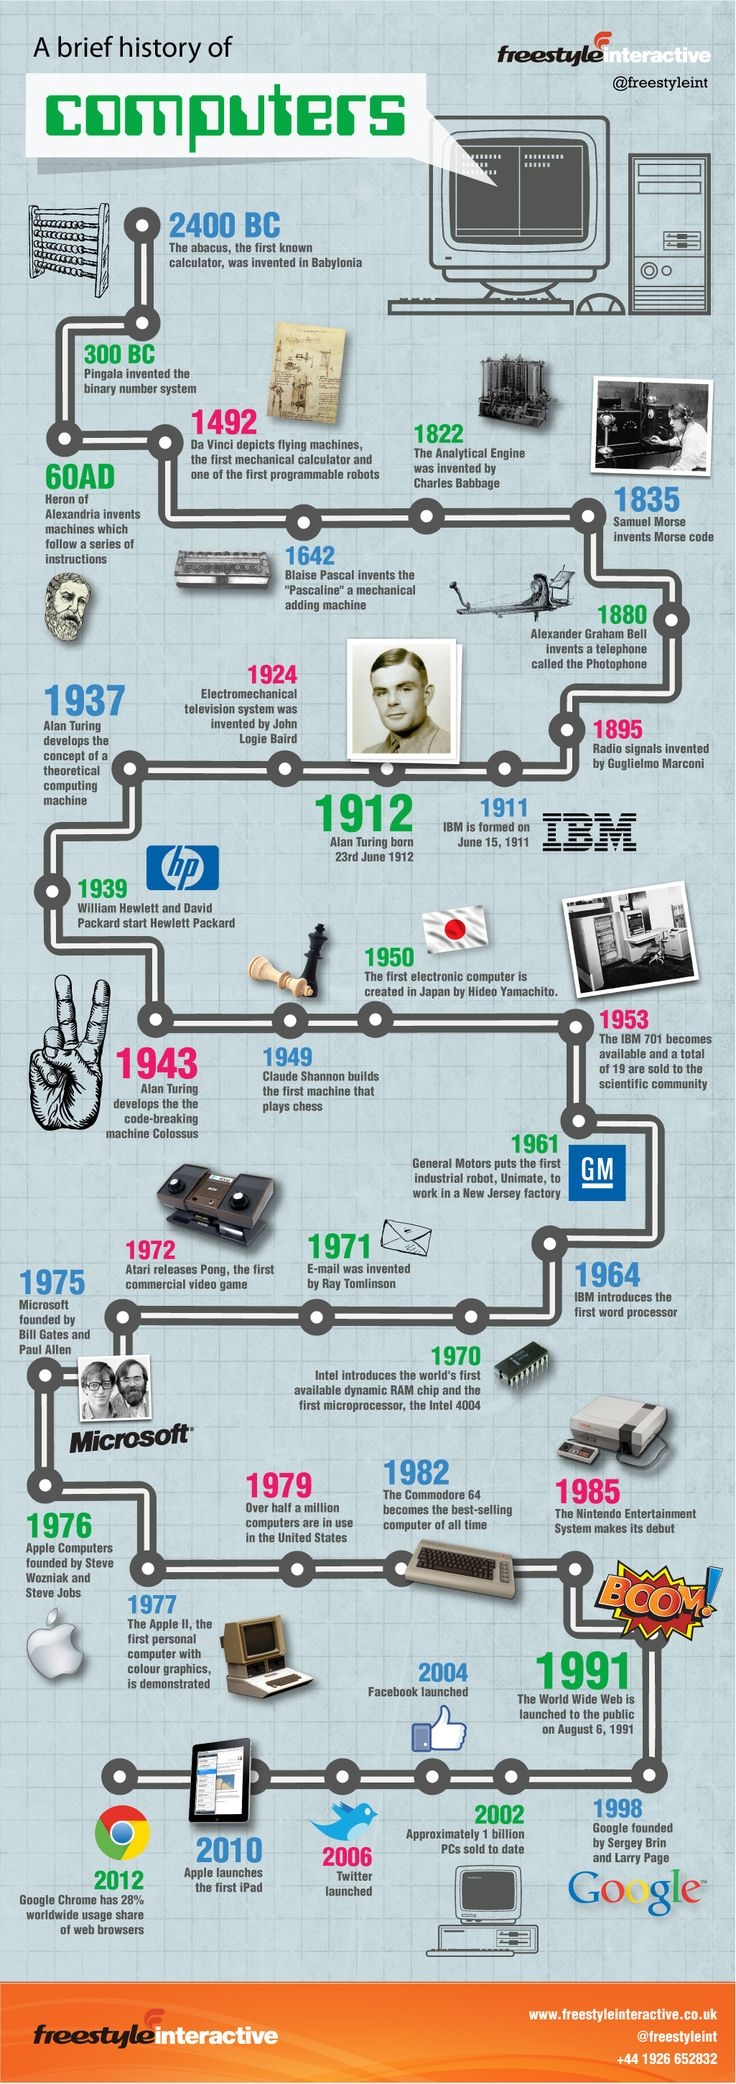 Freestyle Interactive's Infographic on the History of Computers